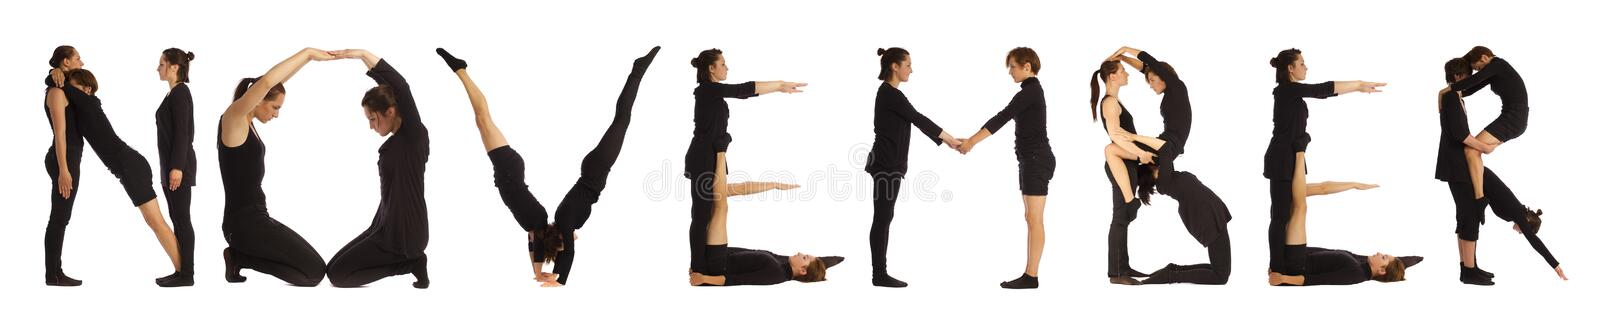 Black dressed people forming NOVEMBER word. Over white background stock photo